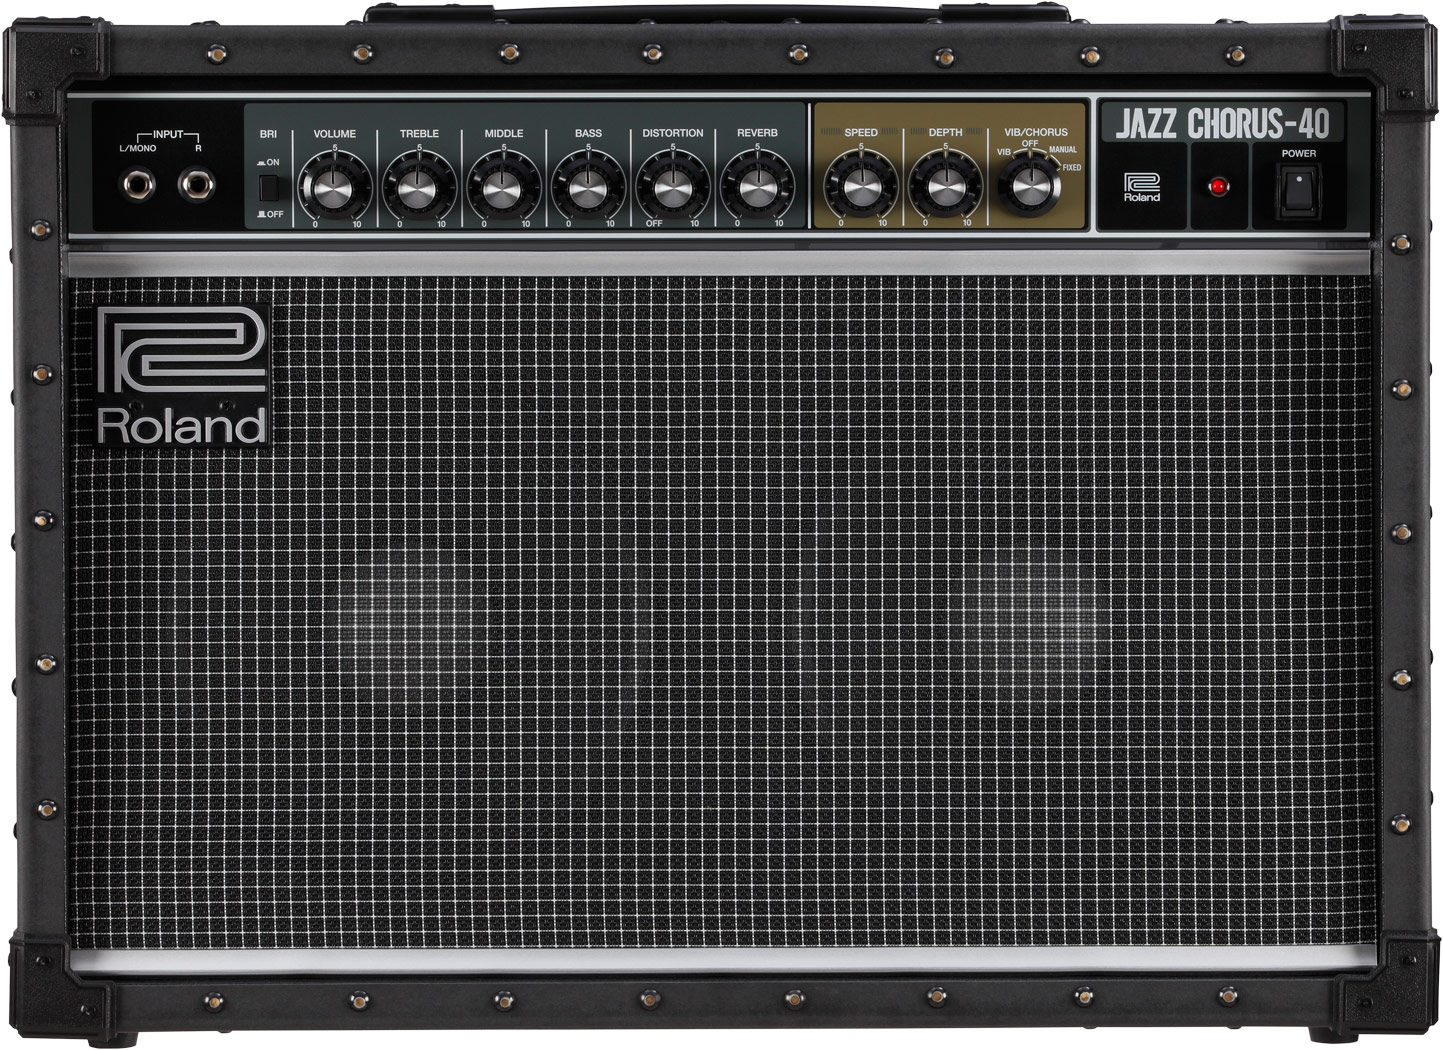 JC-40 | Jazz Chorus Guitar Amplifier - Roland on true bypass schematic, egnater rebel 20 schematic, crate 50 tube amp schematic, vox ac4 schematic, fender power chorus schematic, peavey special 130 schematic, looper pedal schematic, 59 bassman schematic, gibson ga-40 schematic, fender tweed champ schematic, marshall super lead schematic, soldano x88r schematic, tube overdrive pedal schematic, vox ac30 schematic, marshall plexi schematic, marshall jcm 800 schematic, dumble schematic, frontman 25r schematic, marshall 1974x schematic, vox ac30cc schematic,